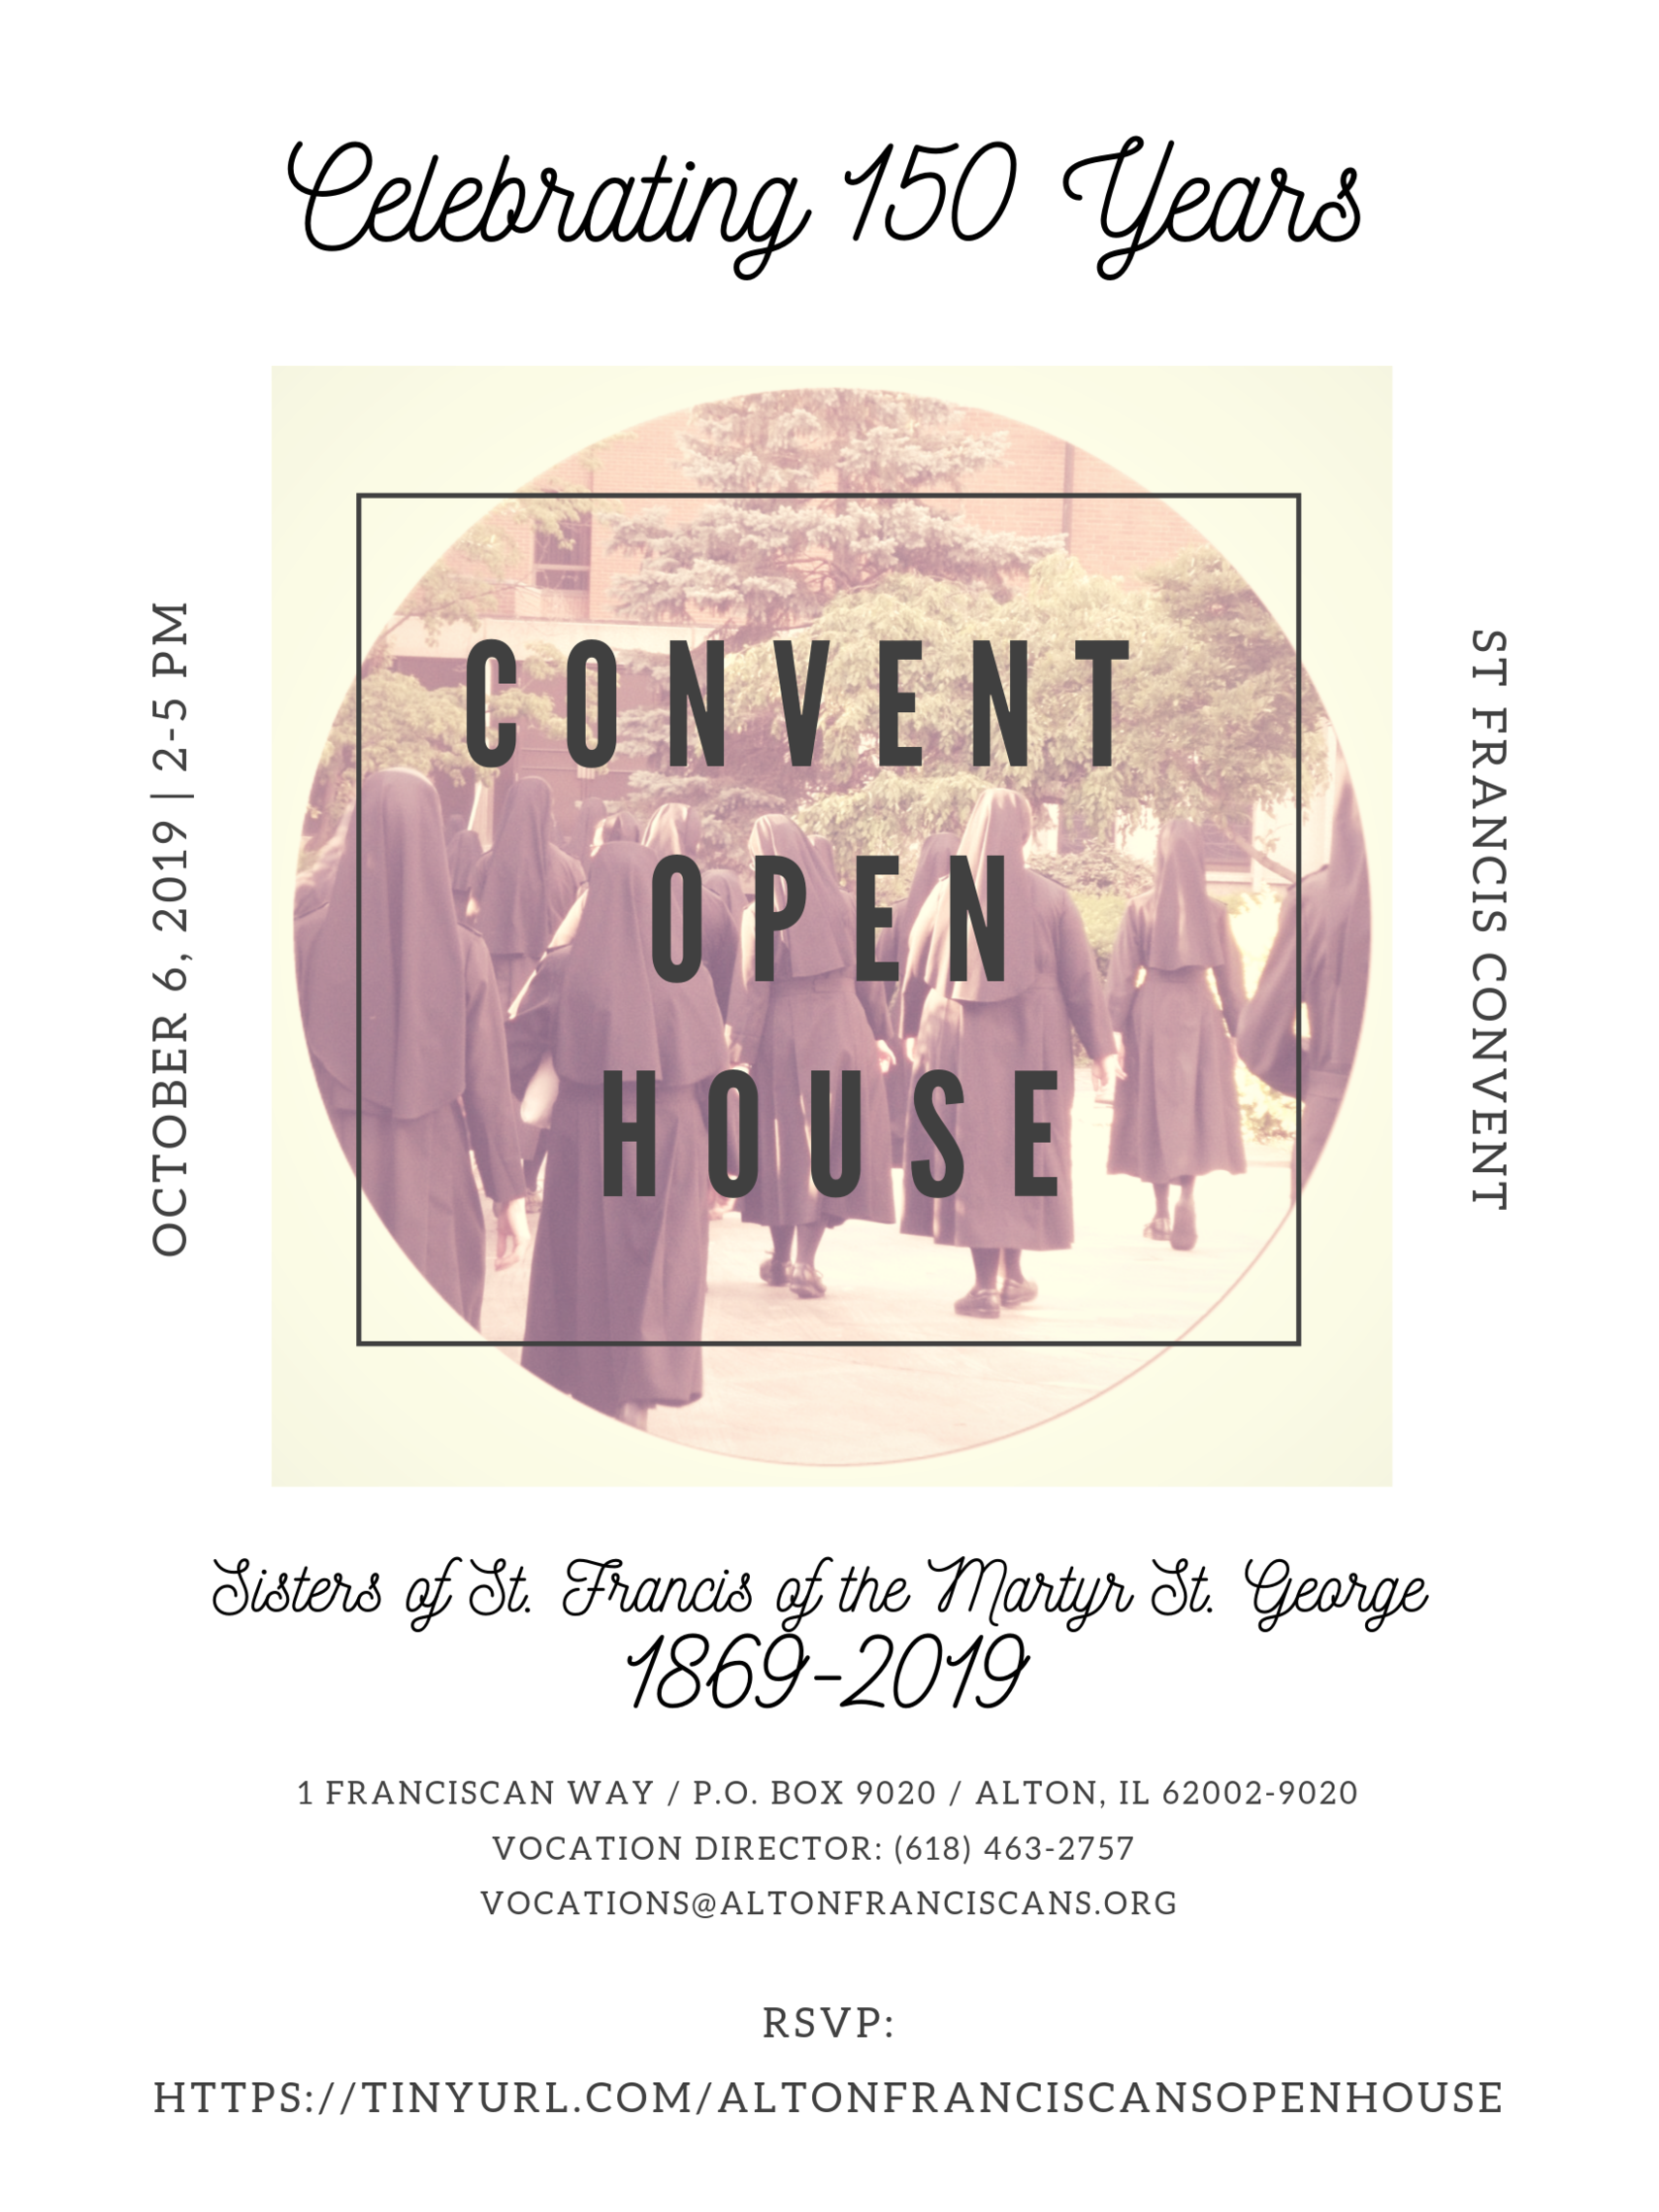 Convent Open House